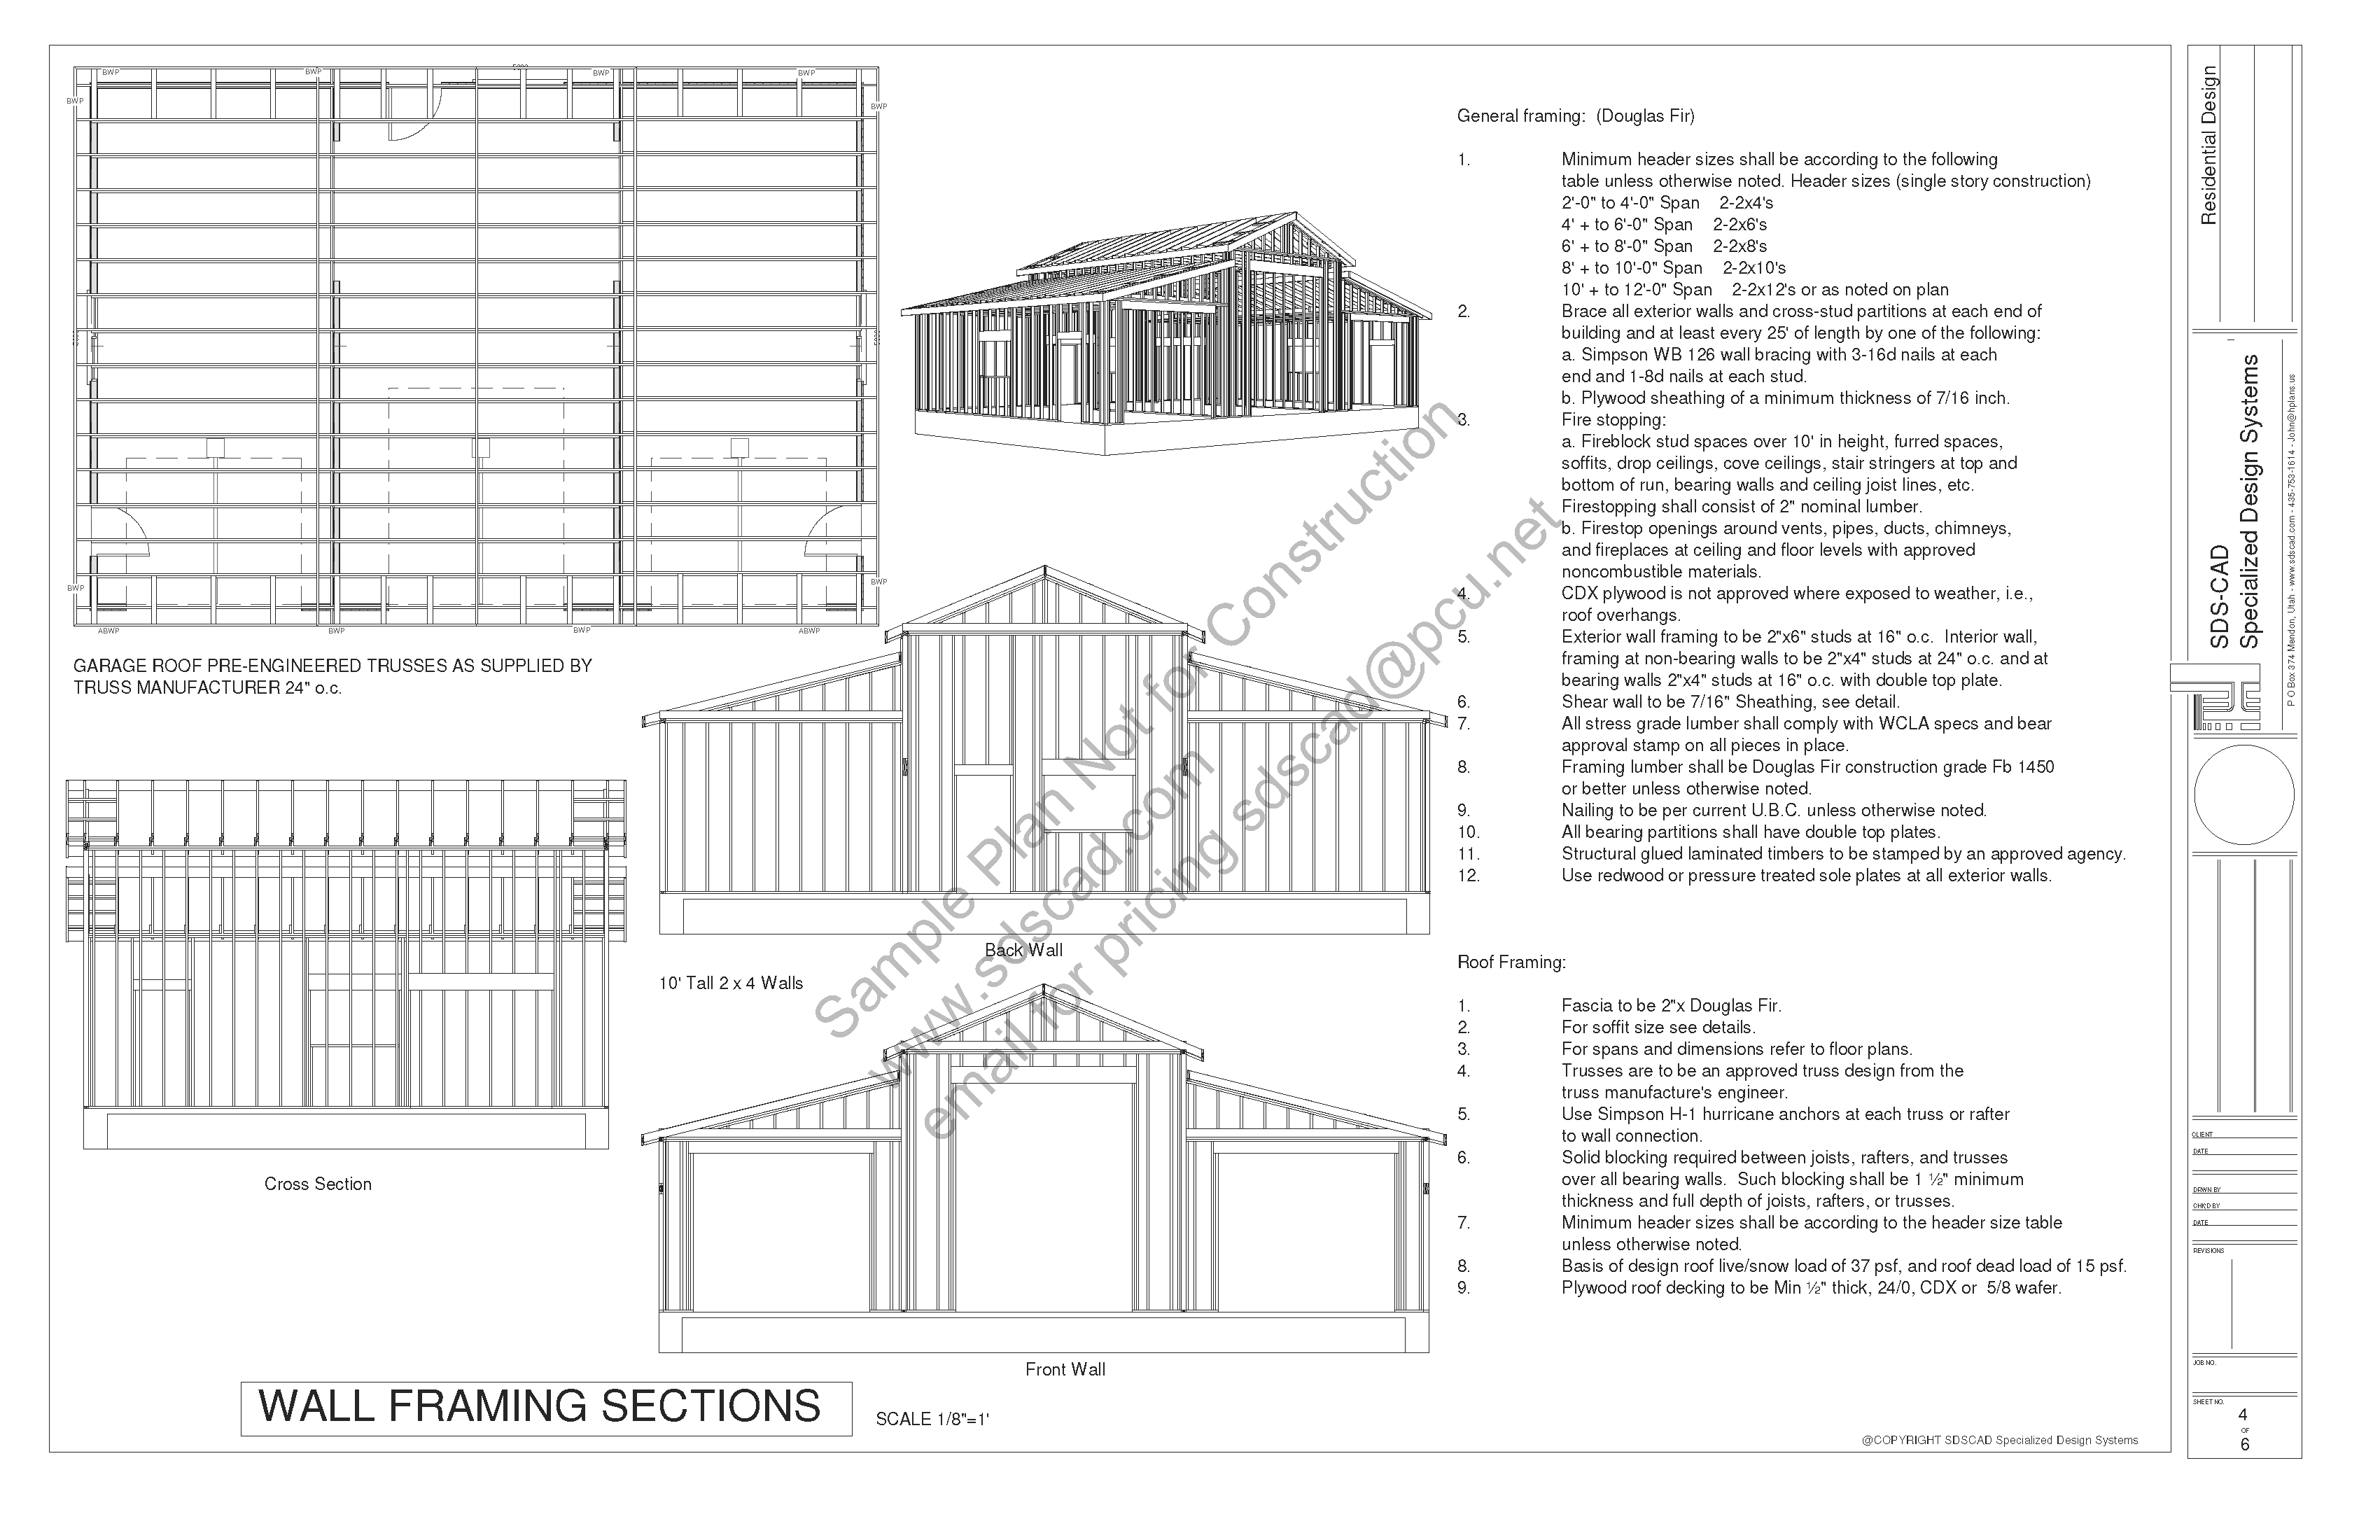 Free barn plan download g25845 x 30 10 barn plans blueprints barn plans storage sheds a collection of barn style garage floor plans from 1 to 3 cars with many options available three ways to buy malvernweather Image collections